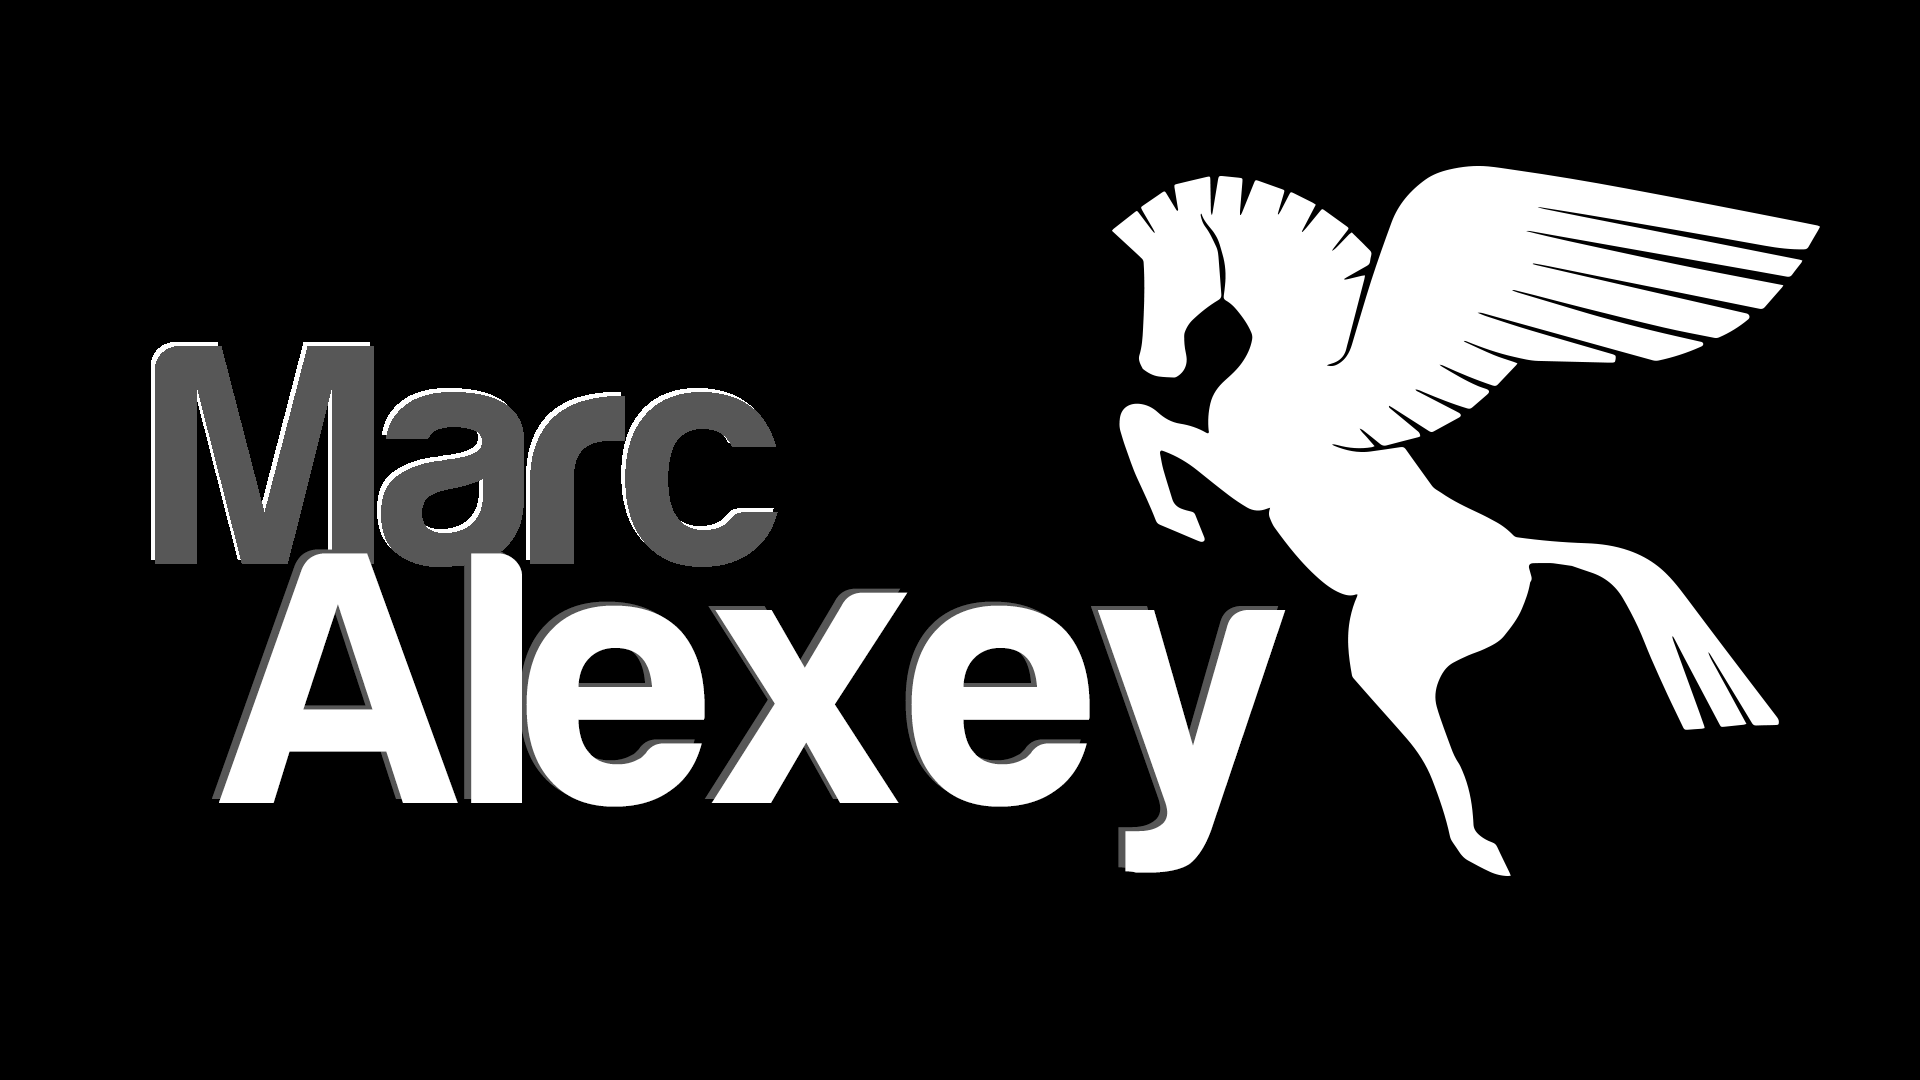 marc alexey_logo_transparent